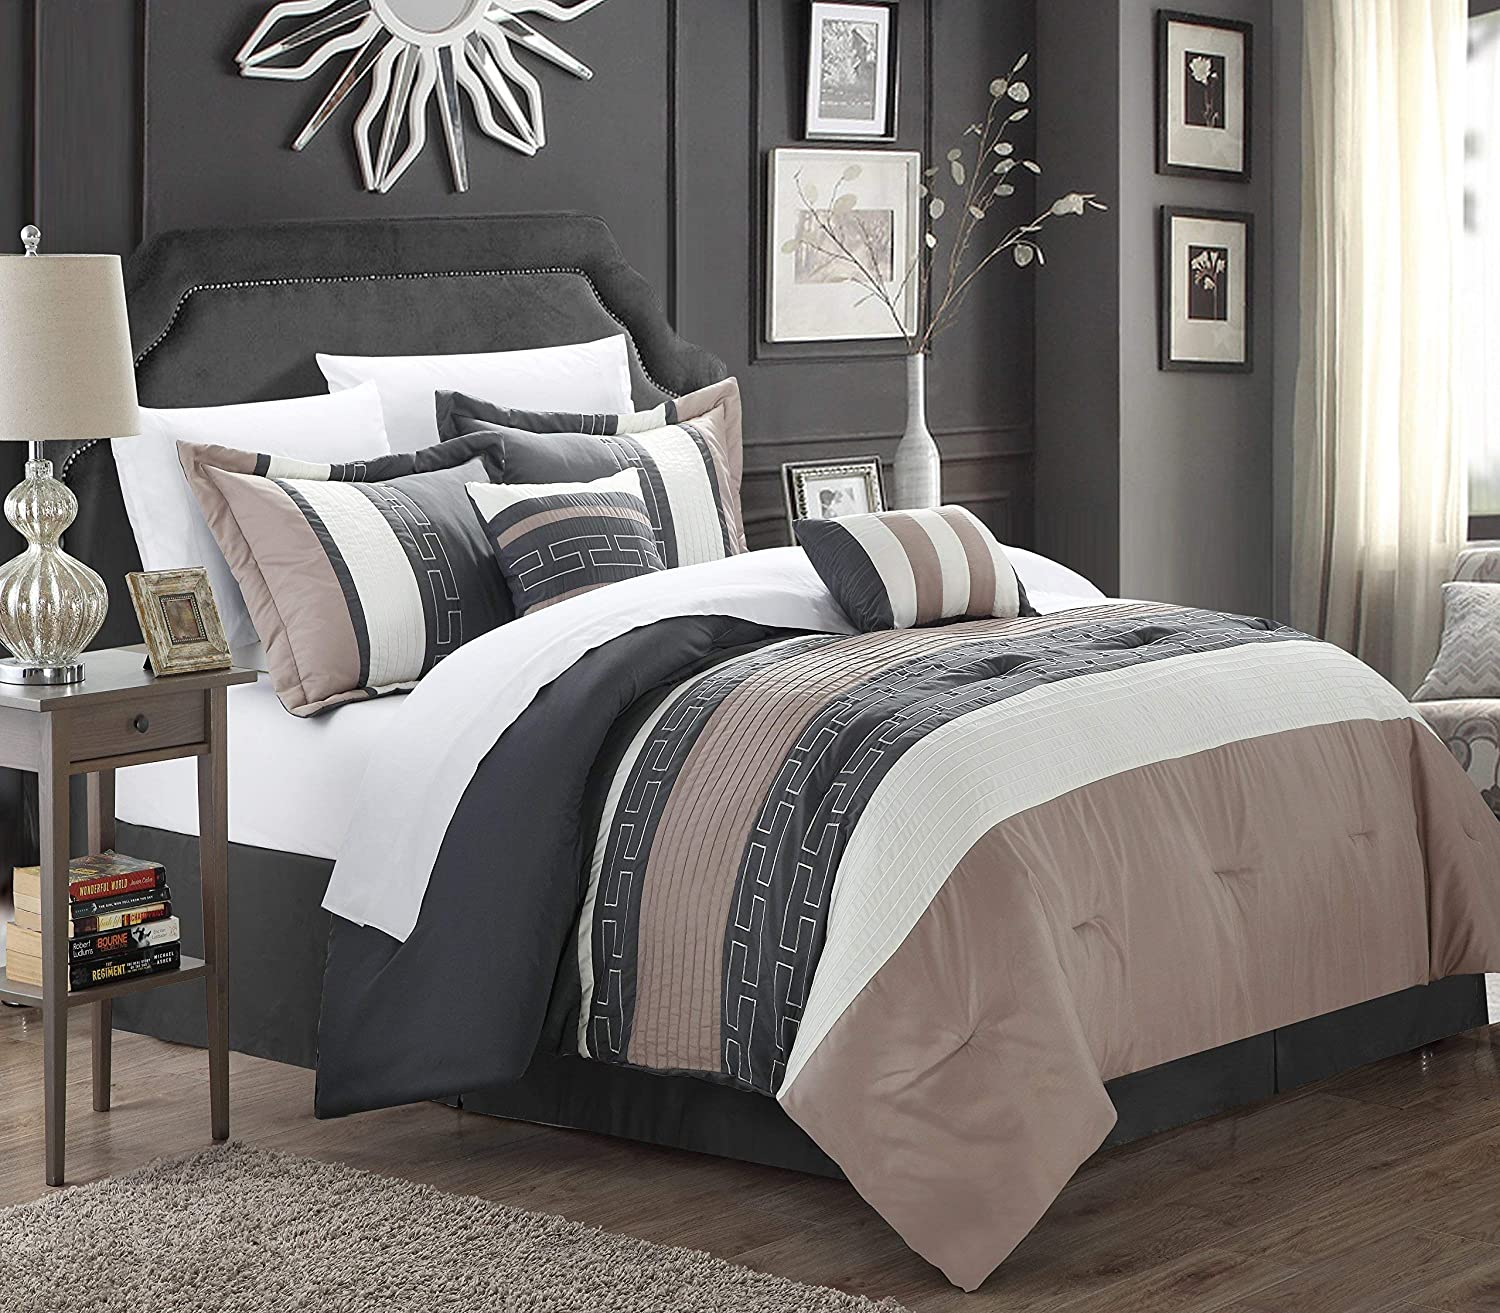 Chic Home Carlton 6-Piece Comforter Set, King Size, Black Chic Home CS1213-212-AN